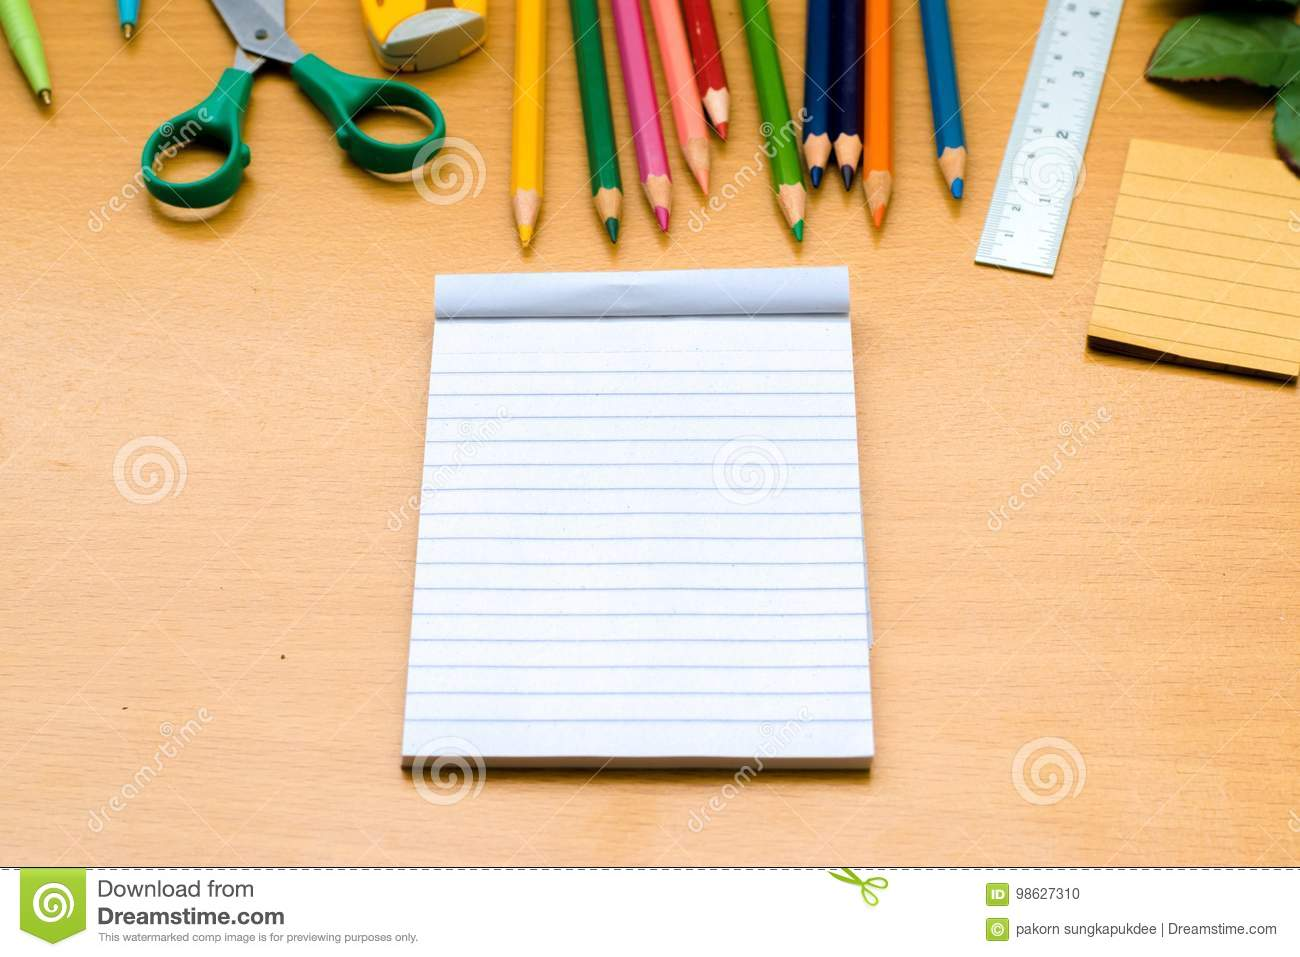 Notepad With Pencil On Wood Board Background Using Wallpaper Or Background For Education Business Photo Take Note Of The Produc Stock Photo Image Of Message Journal 98627310